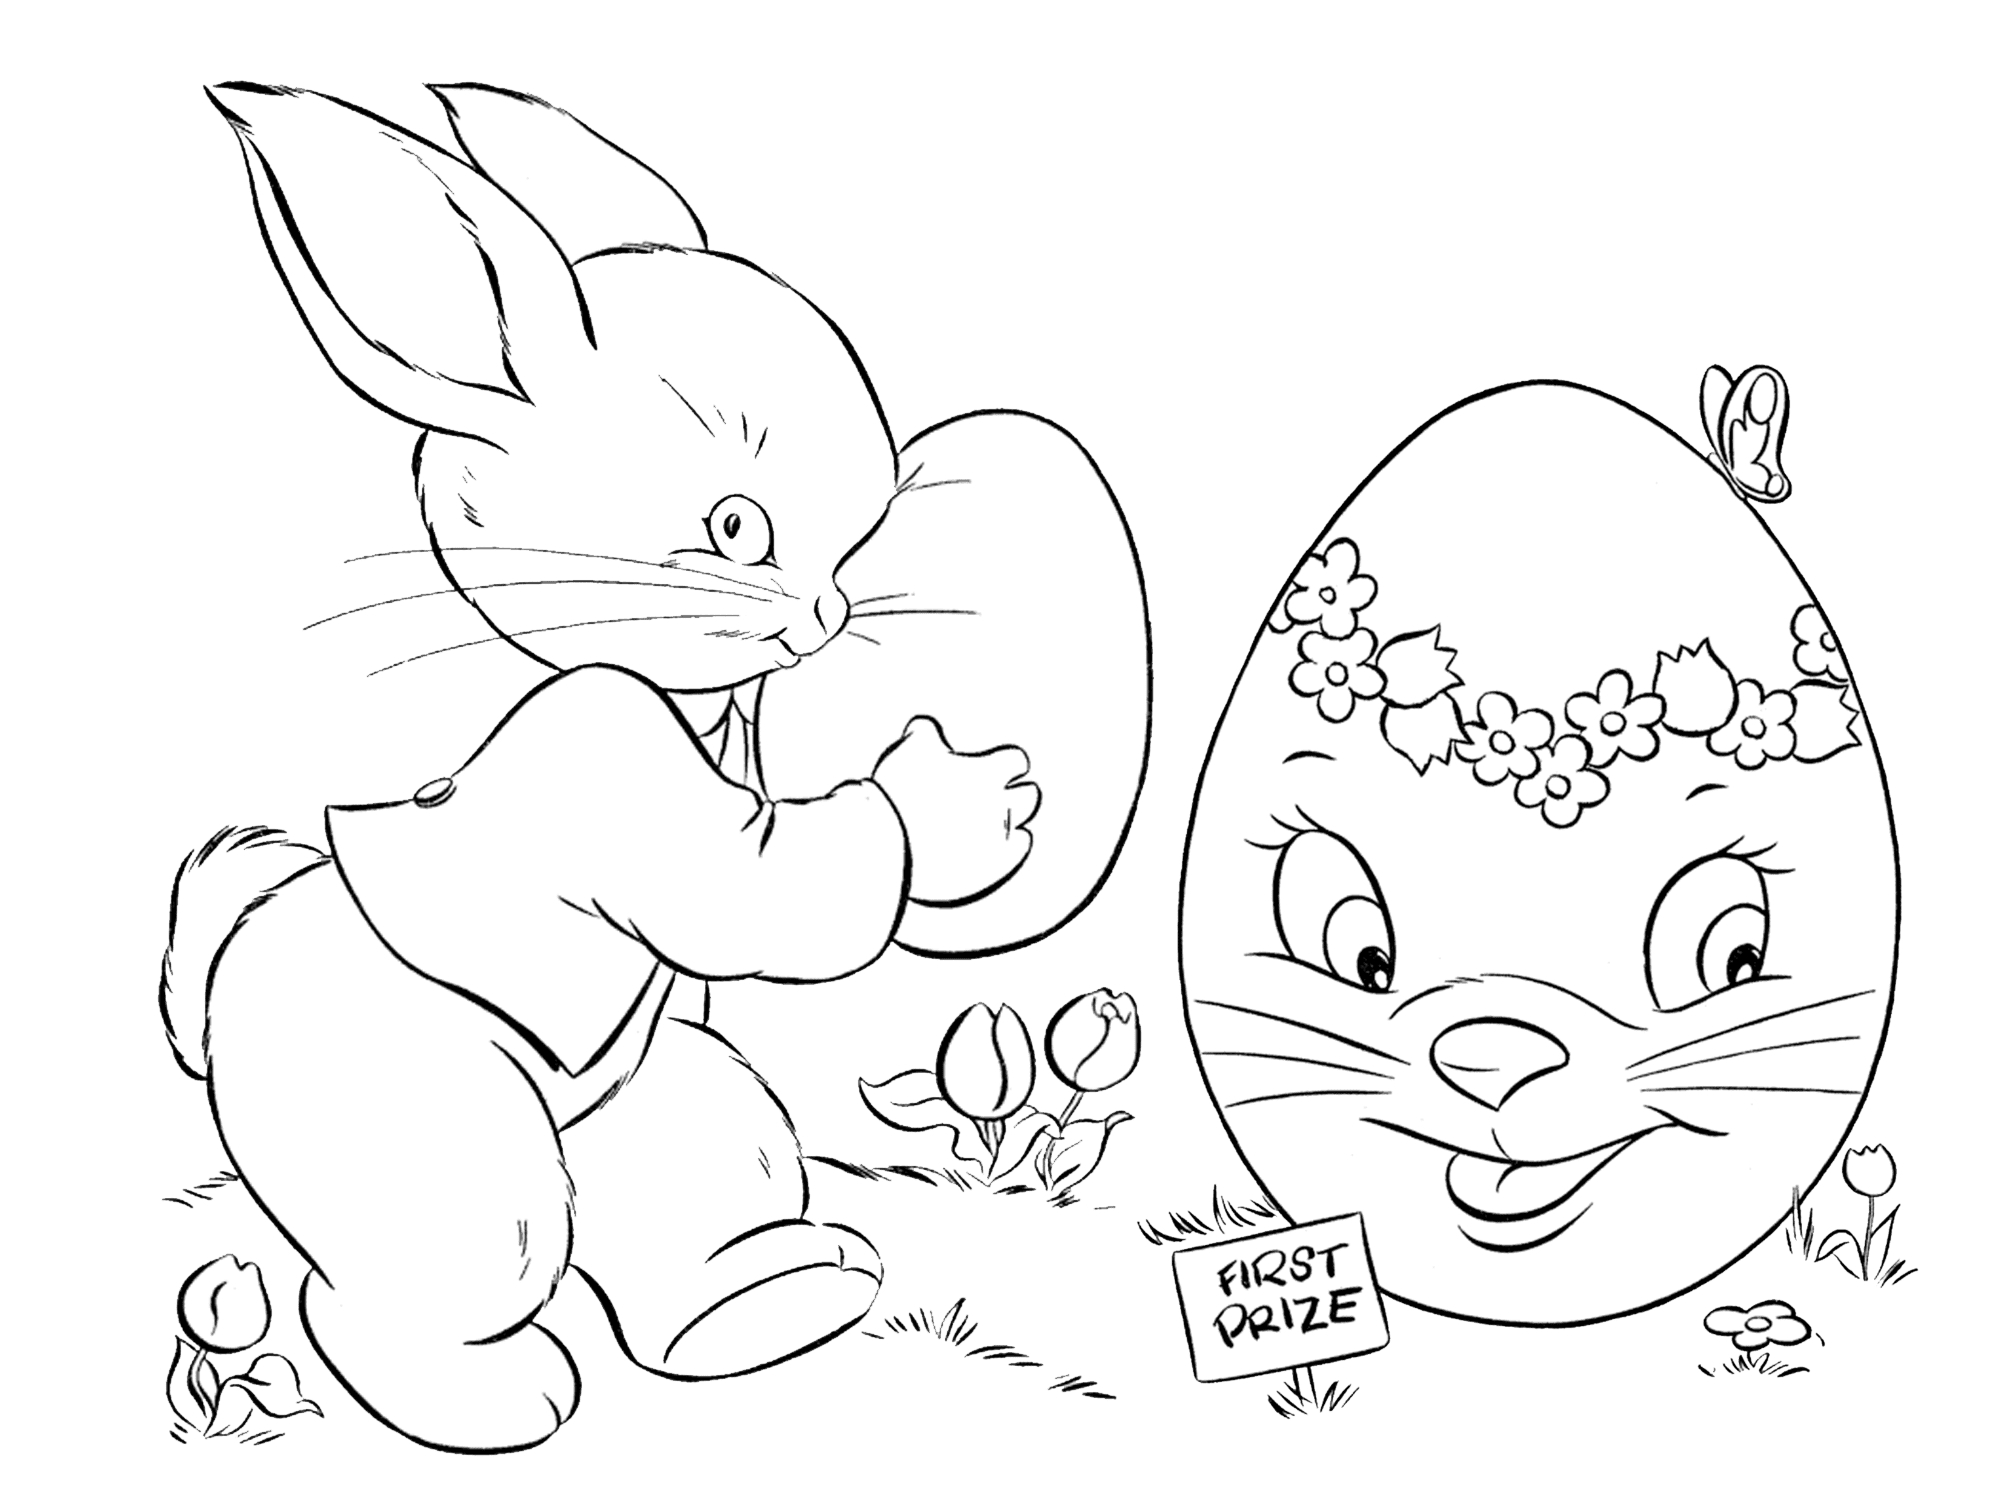 7 Places For Free, Printable Easter Egg Coloring Pages - Free Printable Easter Colouring Sheets